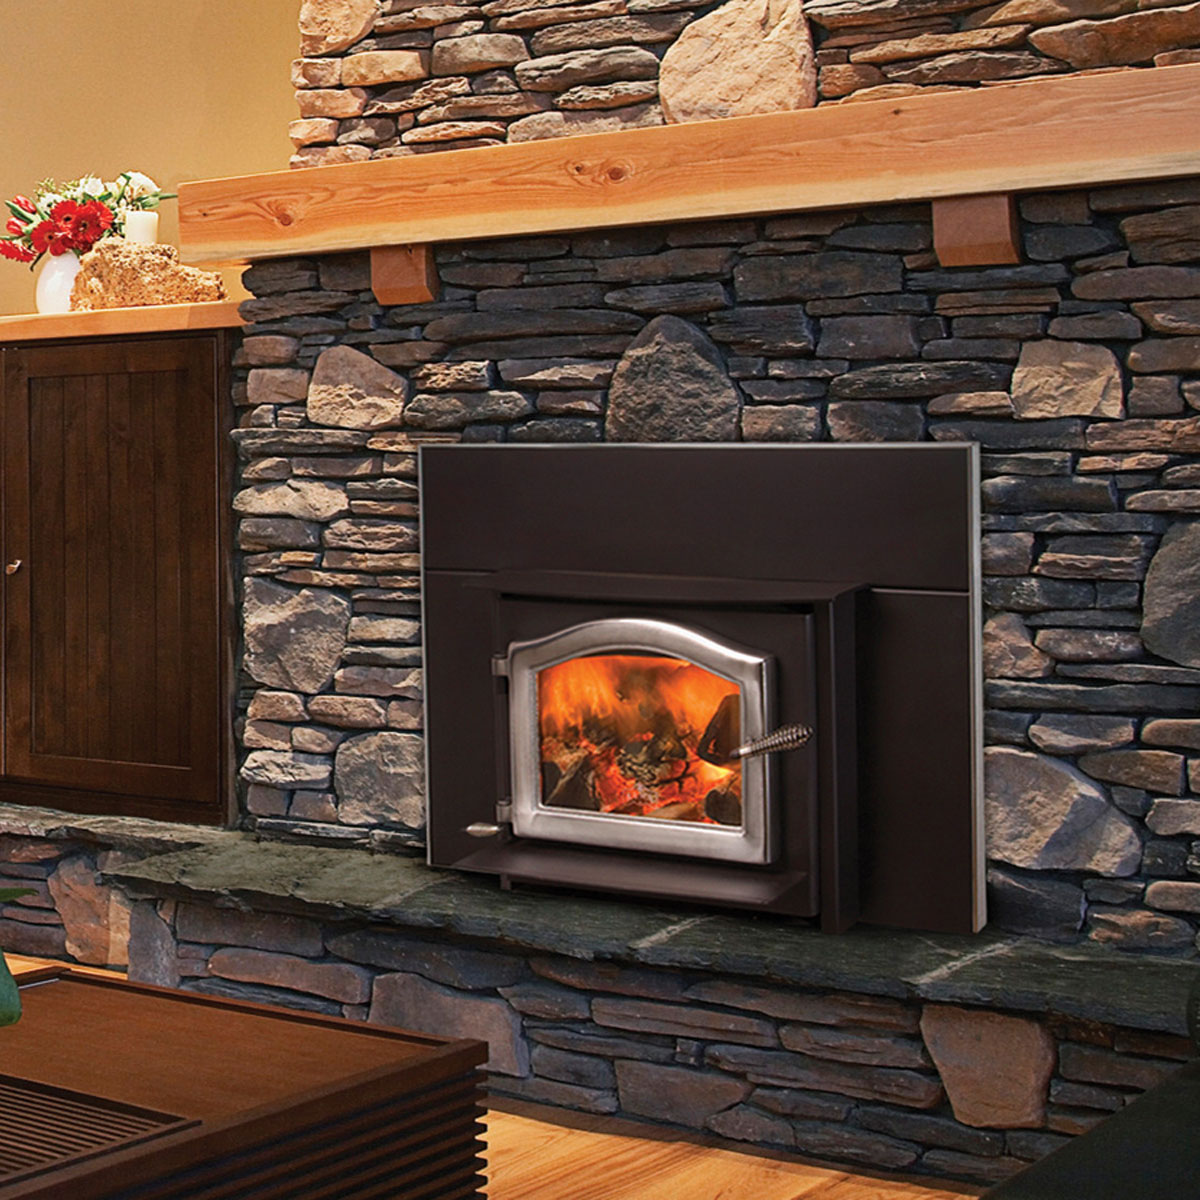 Ashwood Fireplace Insert, Wood Stove Insert by Kuma Stoves